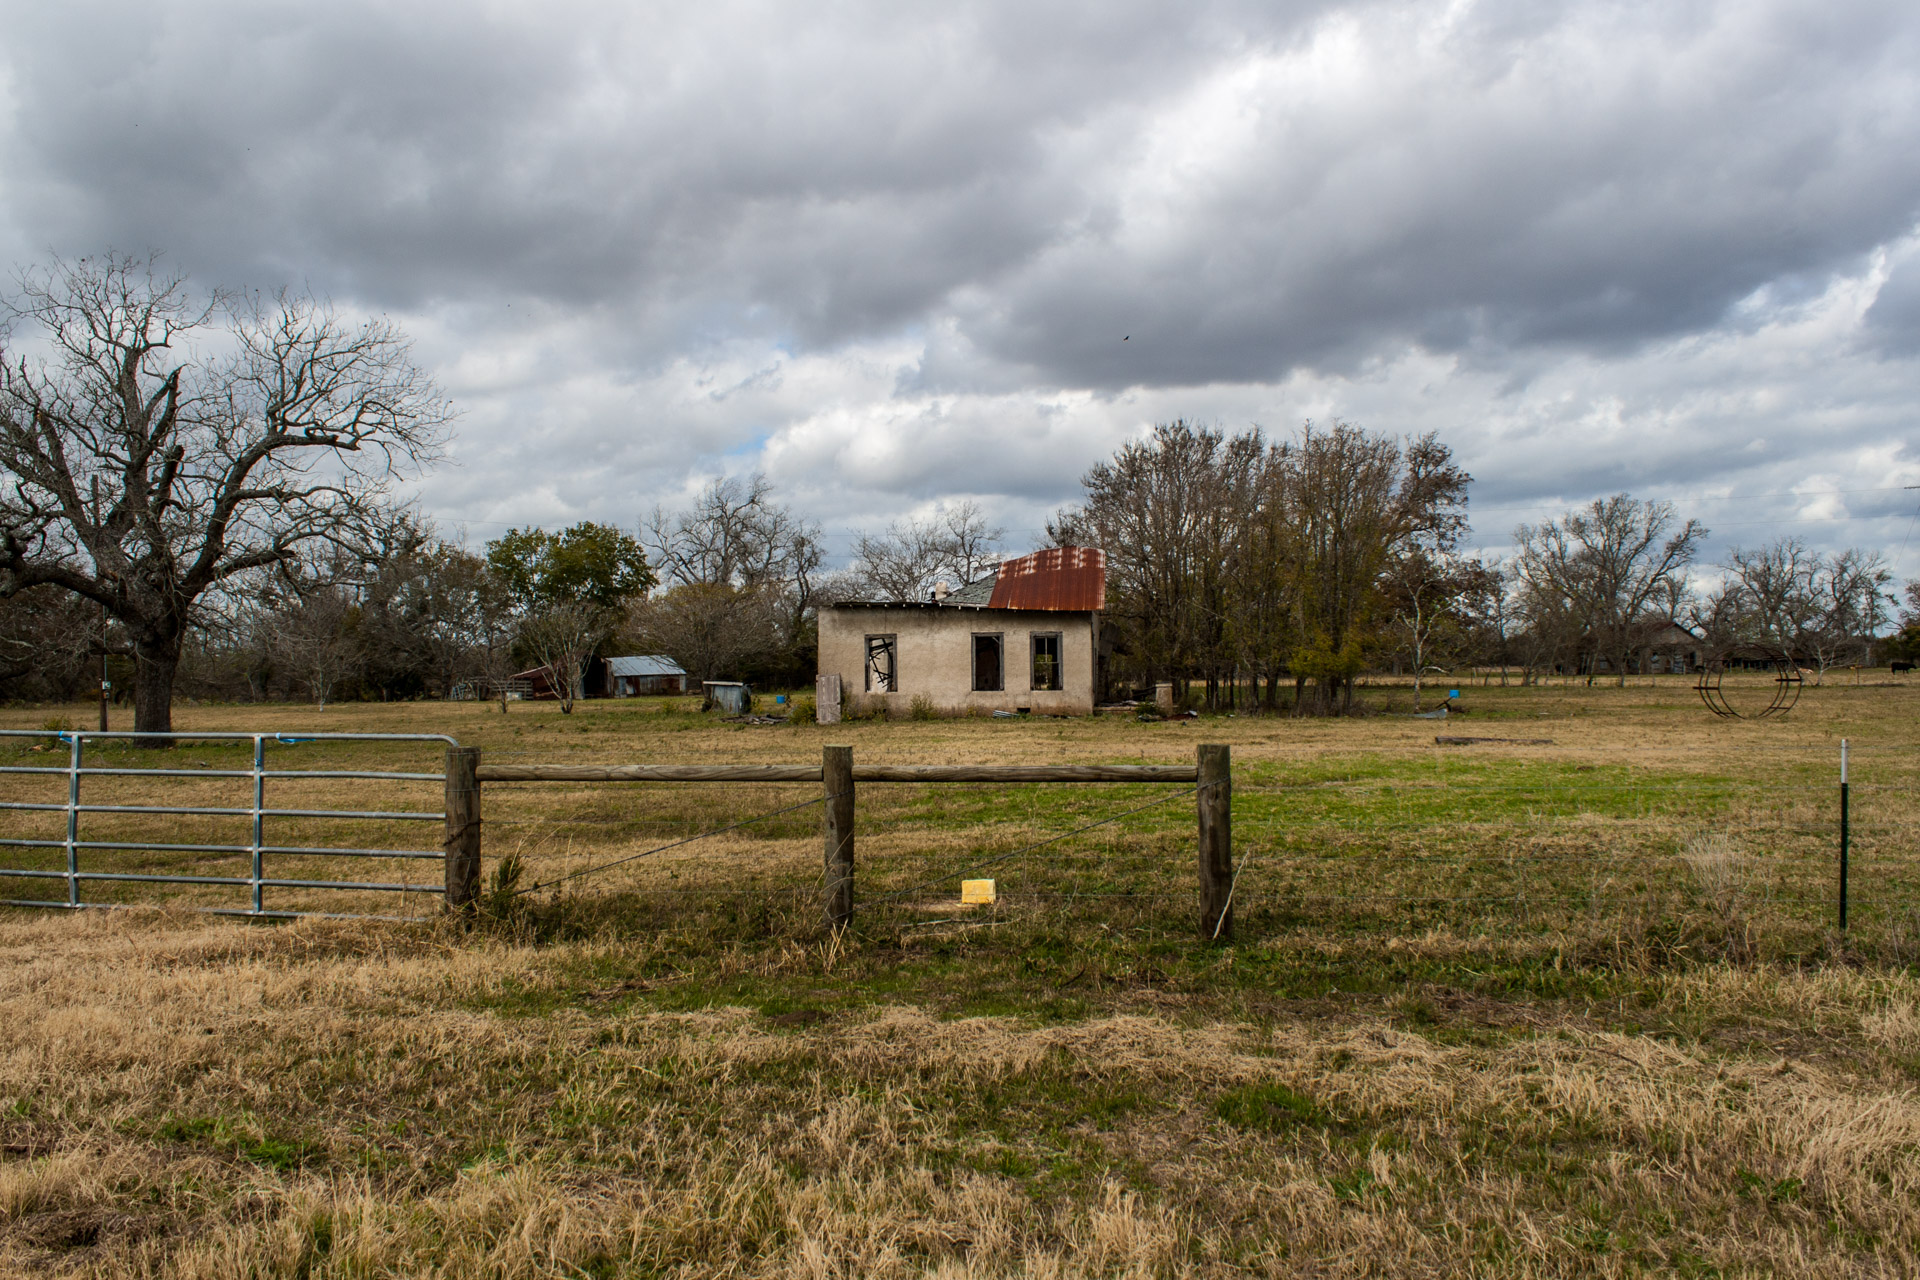 La Grange, Texas - An Impacted Roof Farmhouse (front far)